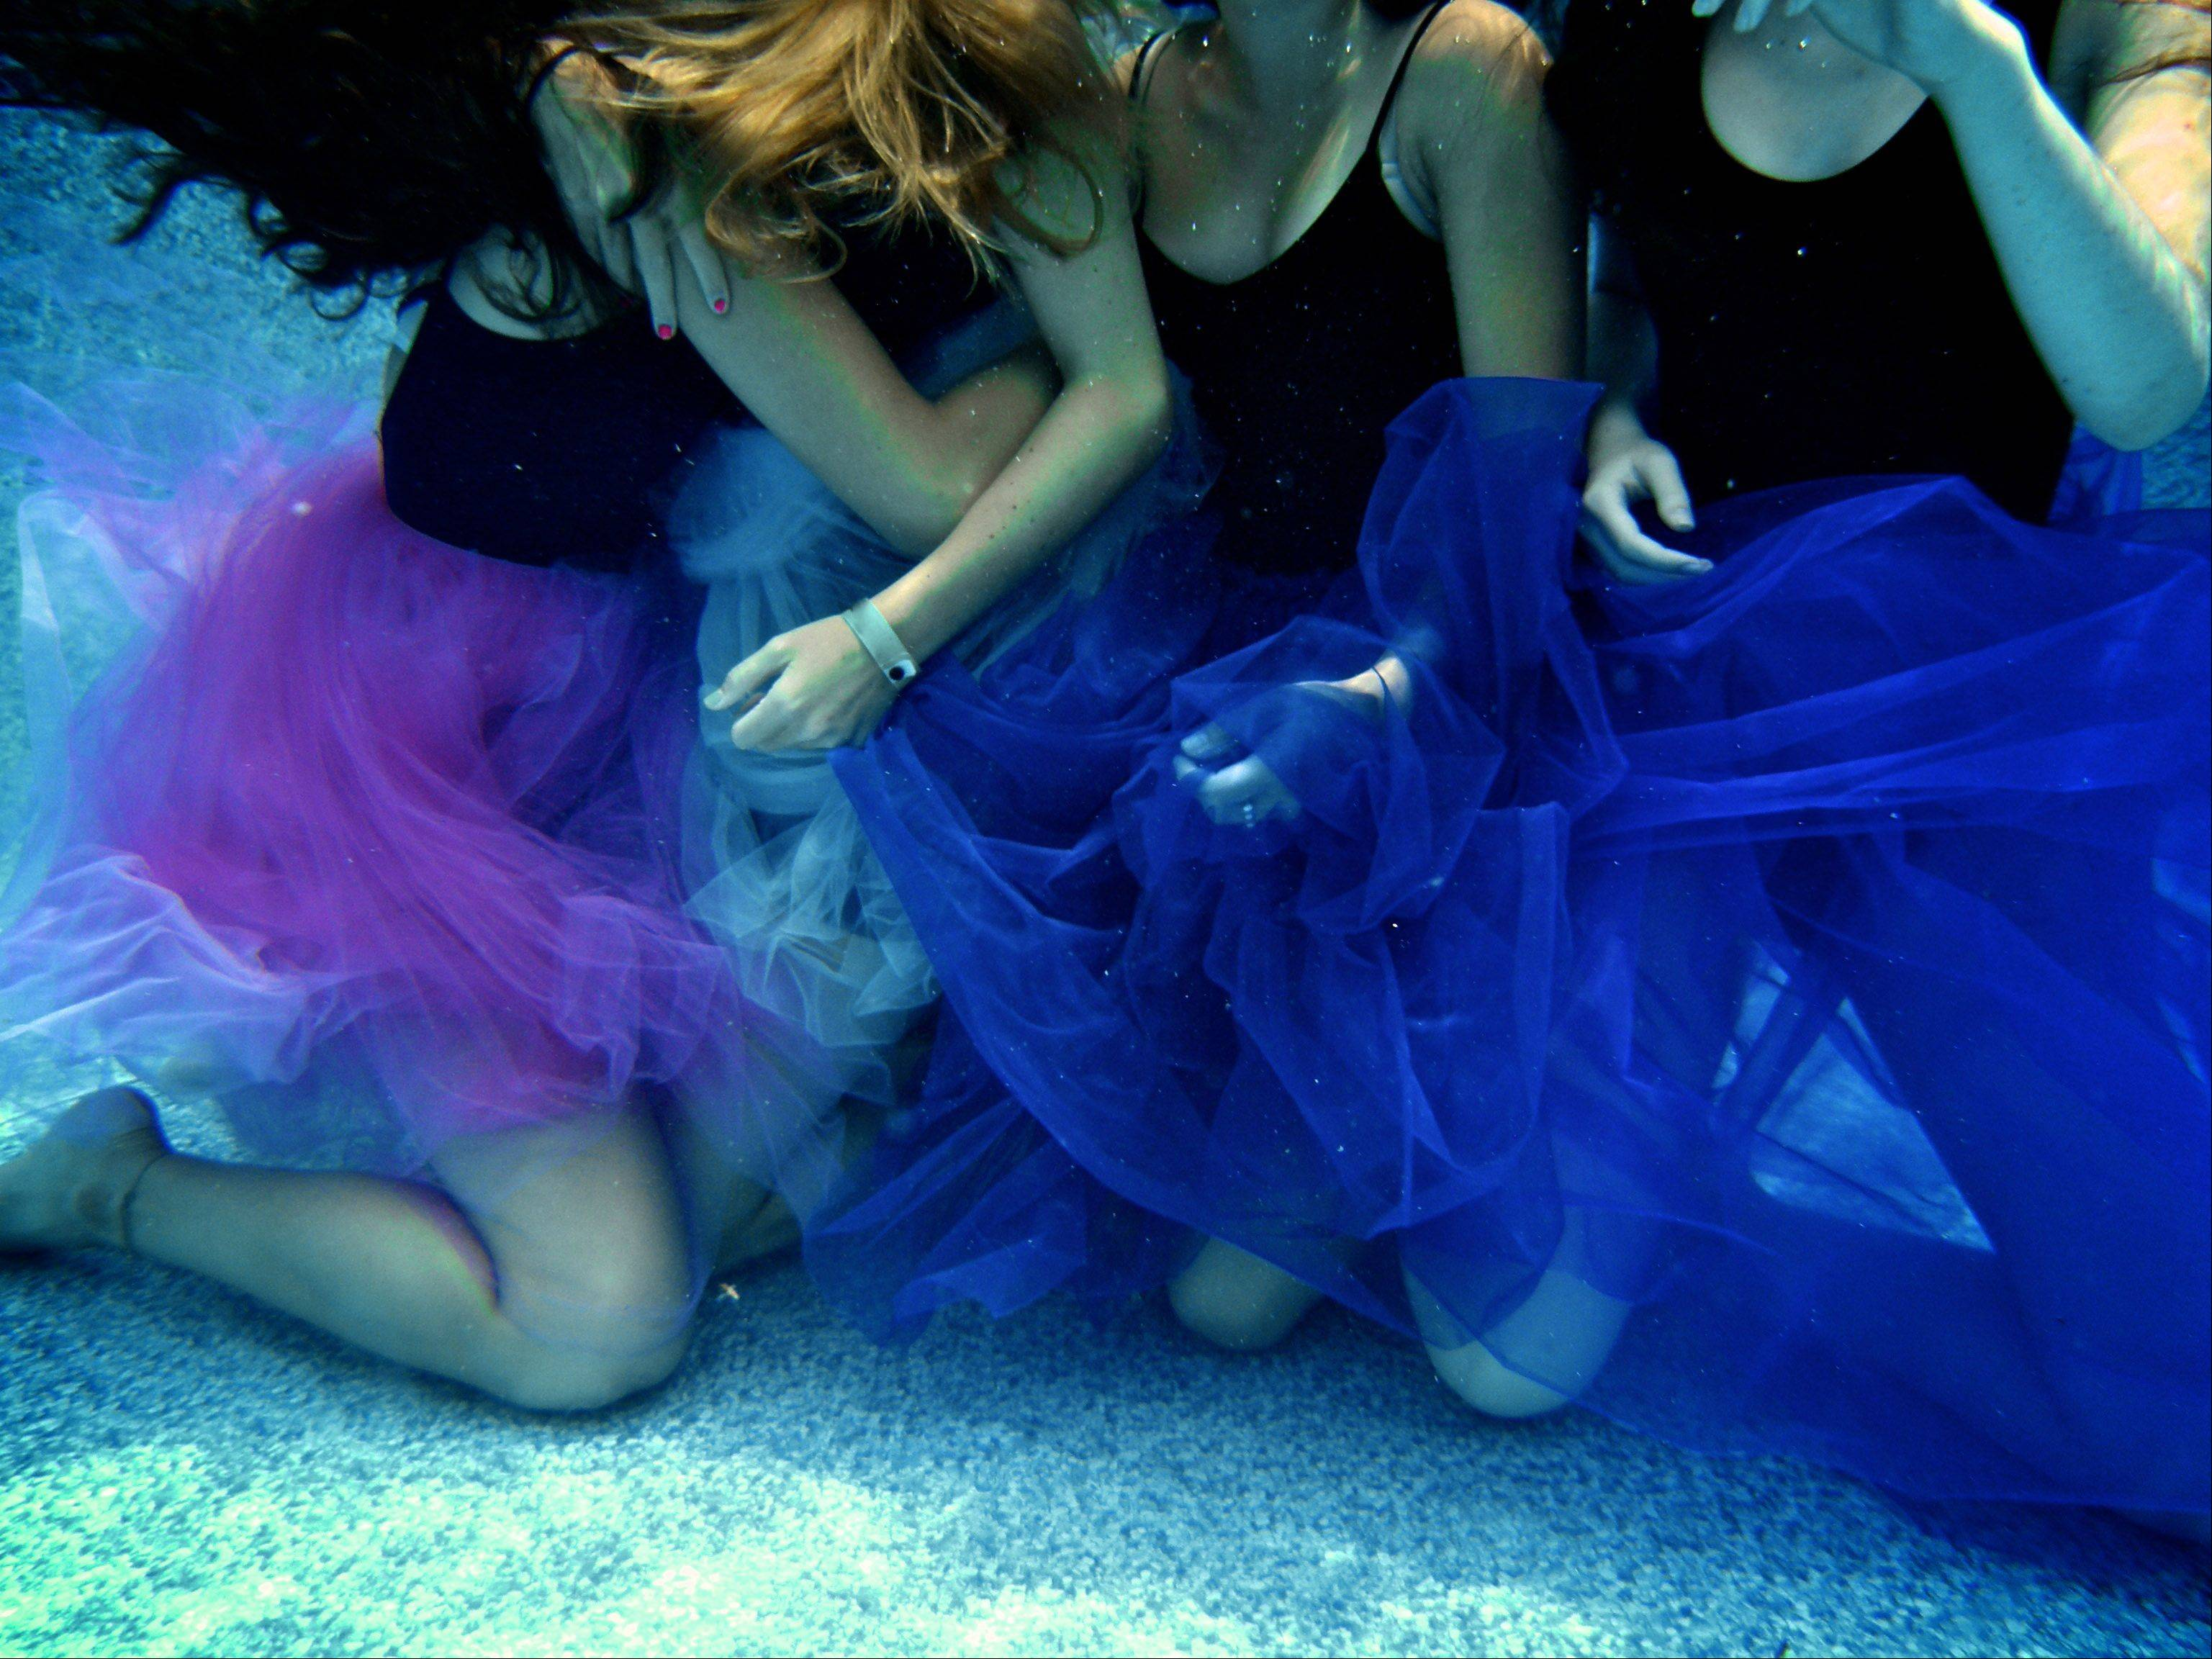 Several girls wear tutus as they are photographed underwater while they float in a swimming pool in Mundelein.